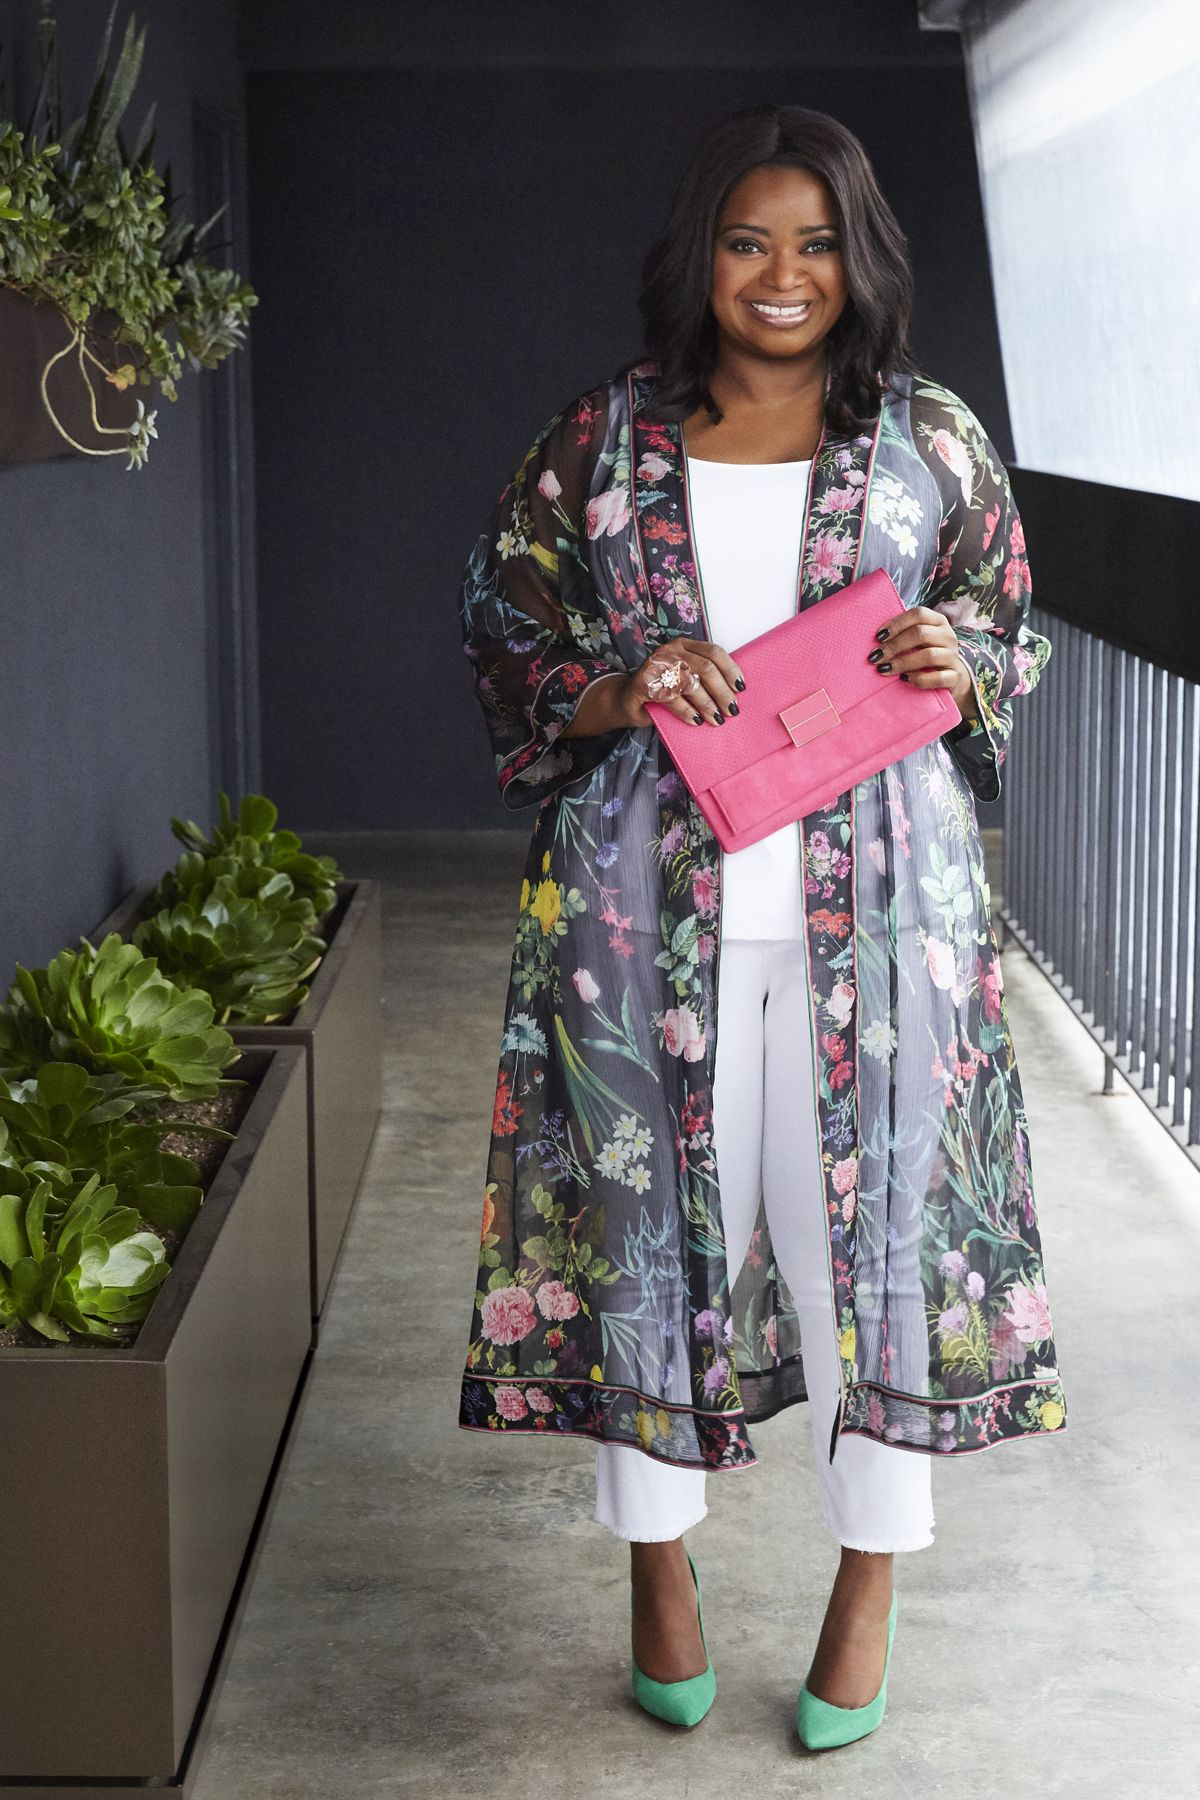 670015934e Octavia Spencer Makes It Rain With Spring Fashion | #PhatFashion ...